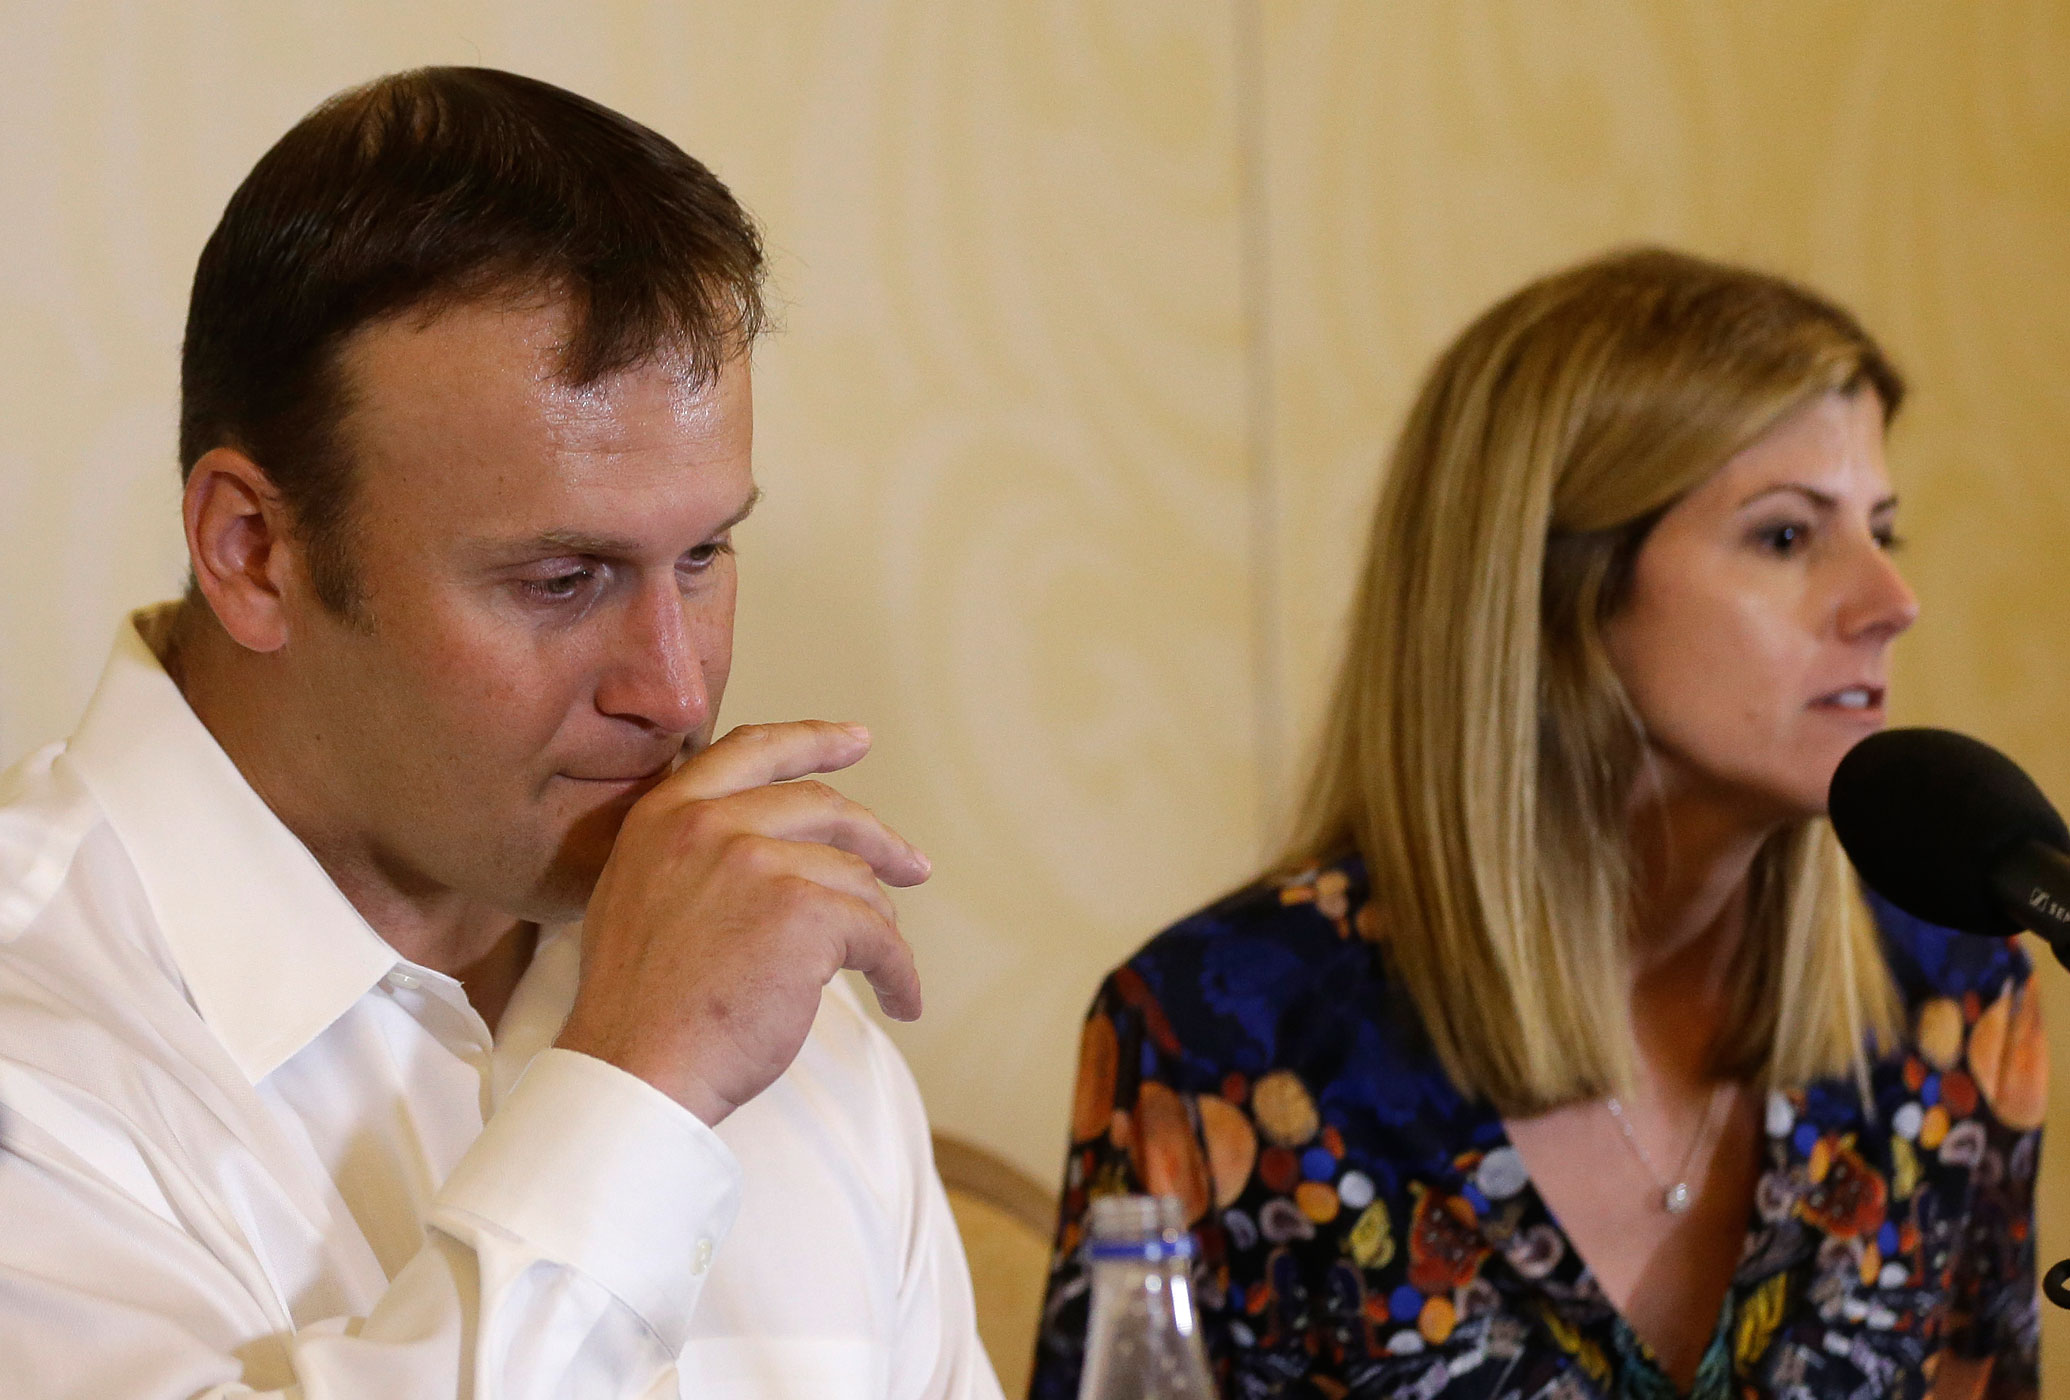 Former Miami Dolphins fullback Rob Konrad, left, listens while his wife Tammy, right, responds to a question during a news conference on Jan. 12, 2015, in Plantation, Fla.